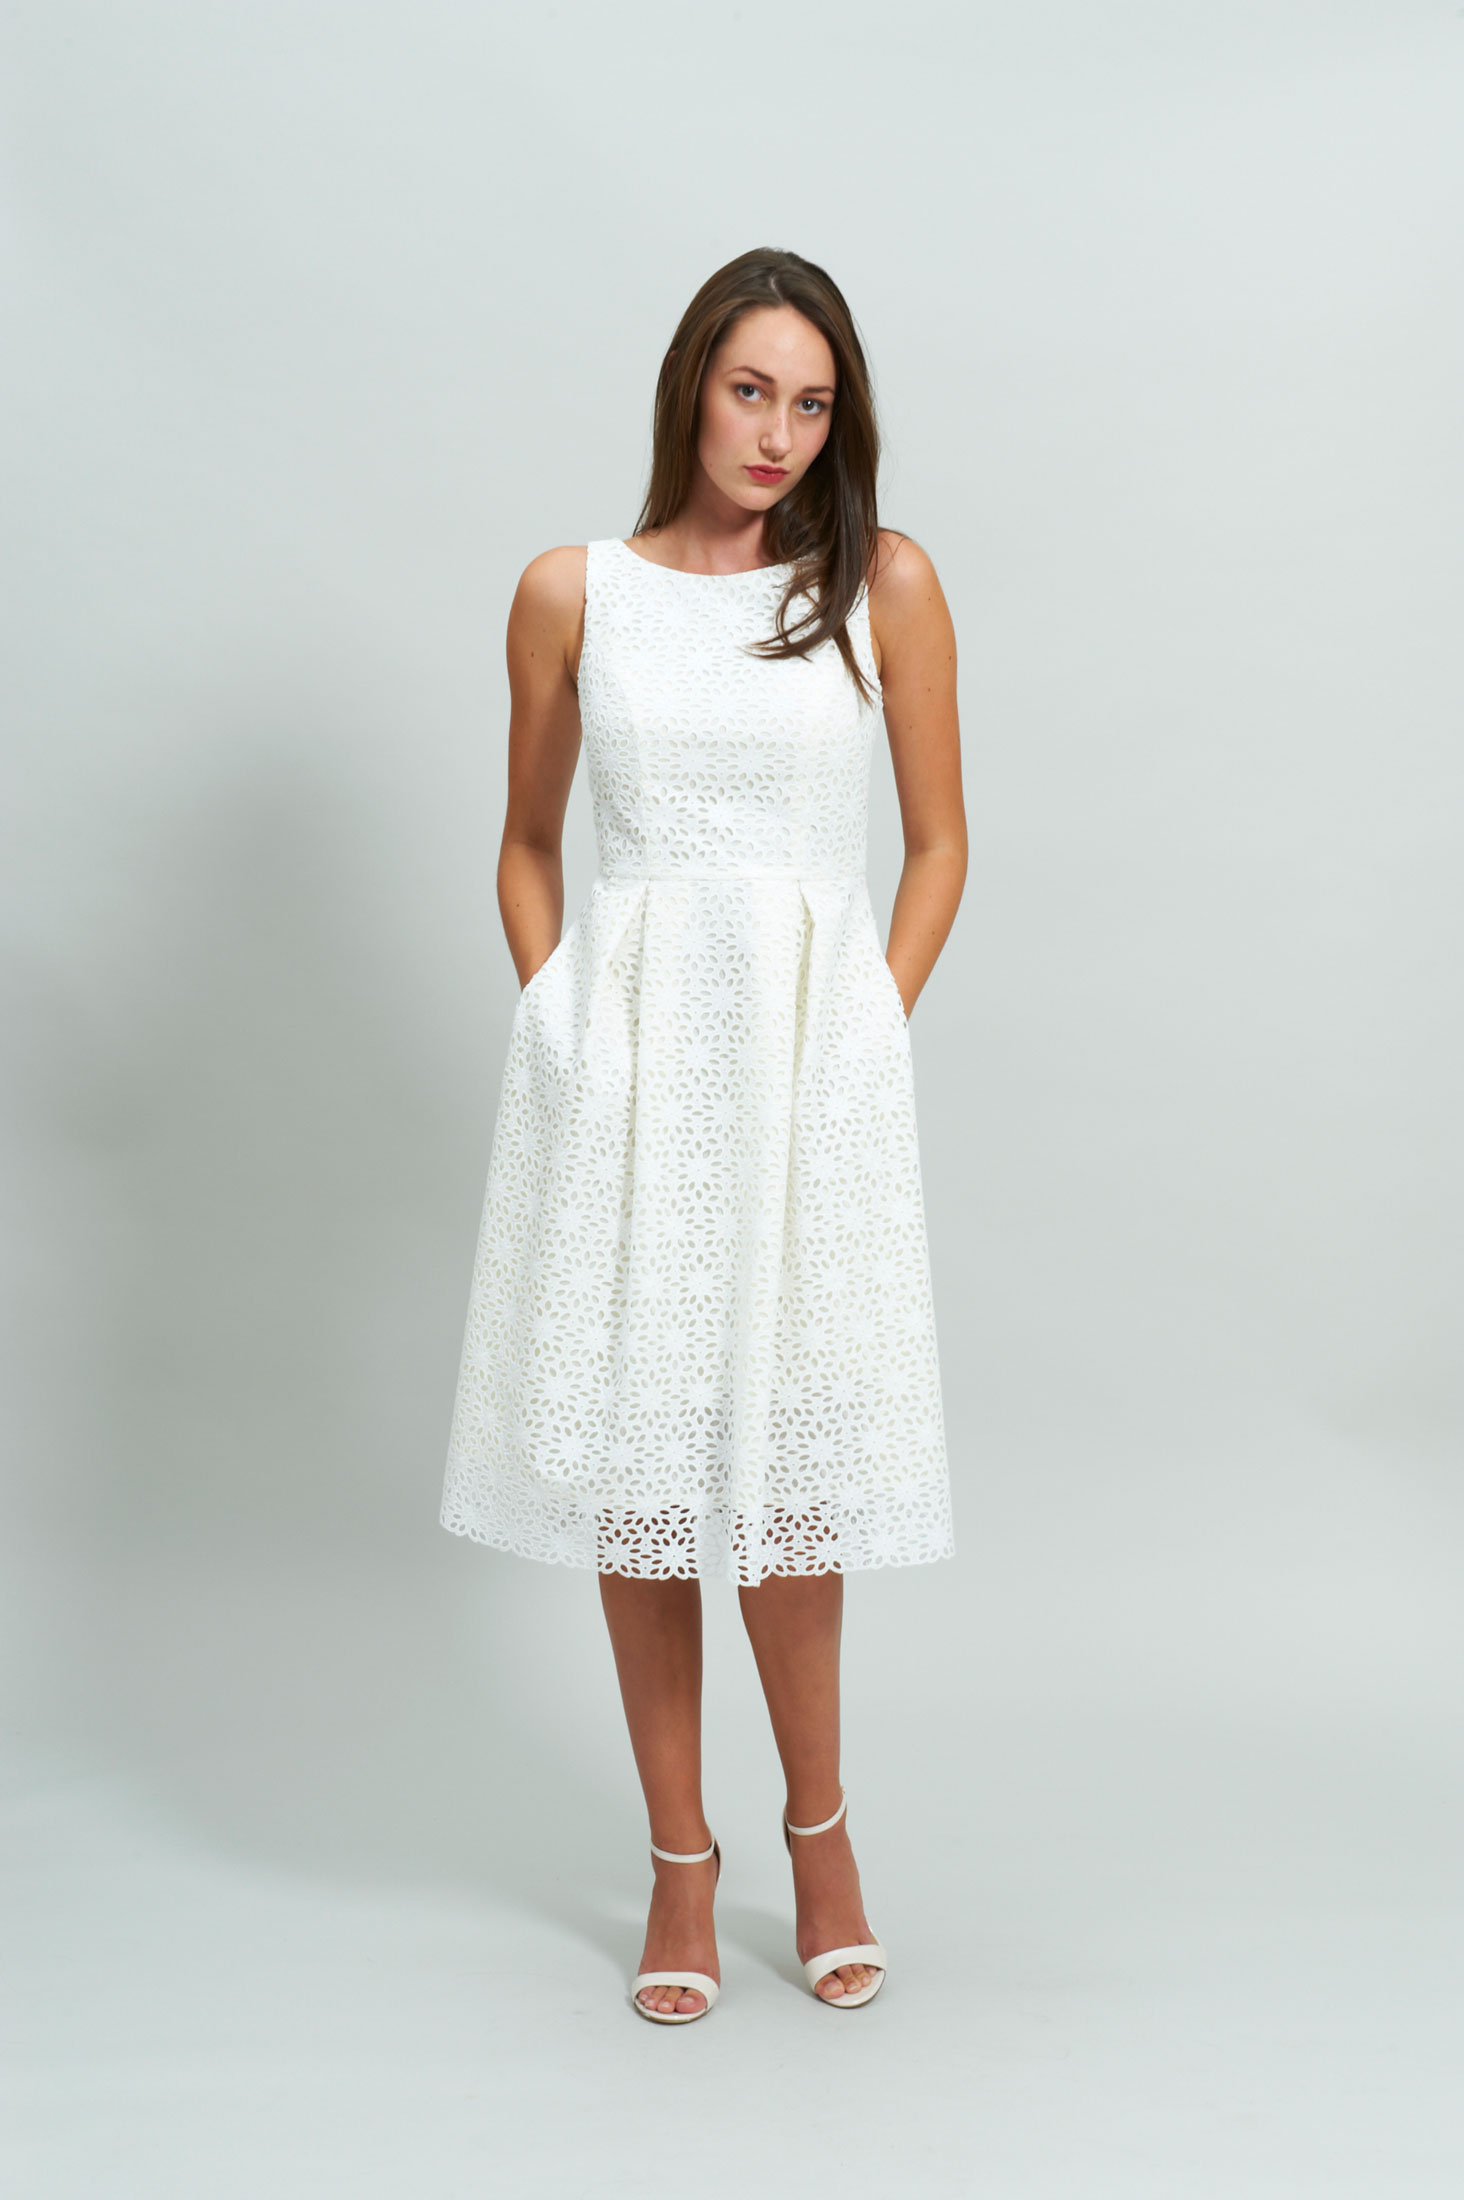 LOOK 3.1 Wedding Dress Fashion Designer atelier Zürich Lace Swiss Civil Wedding Dresses Sommer Dress